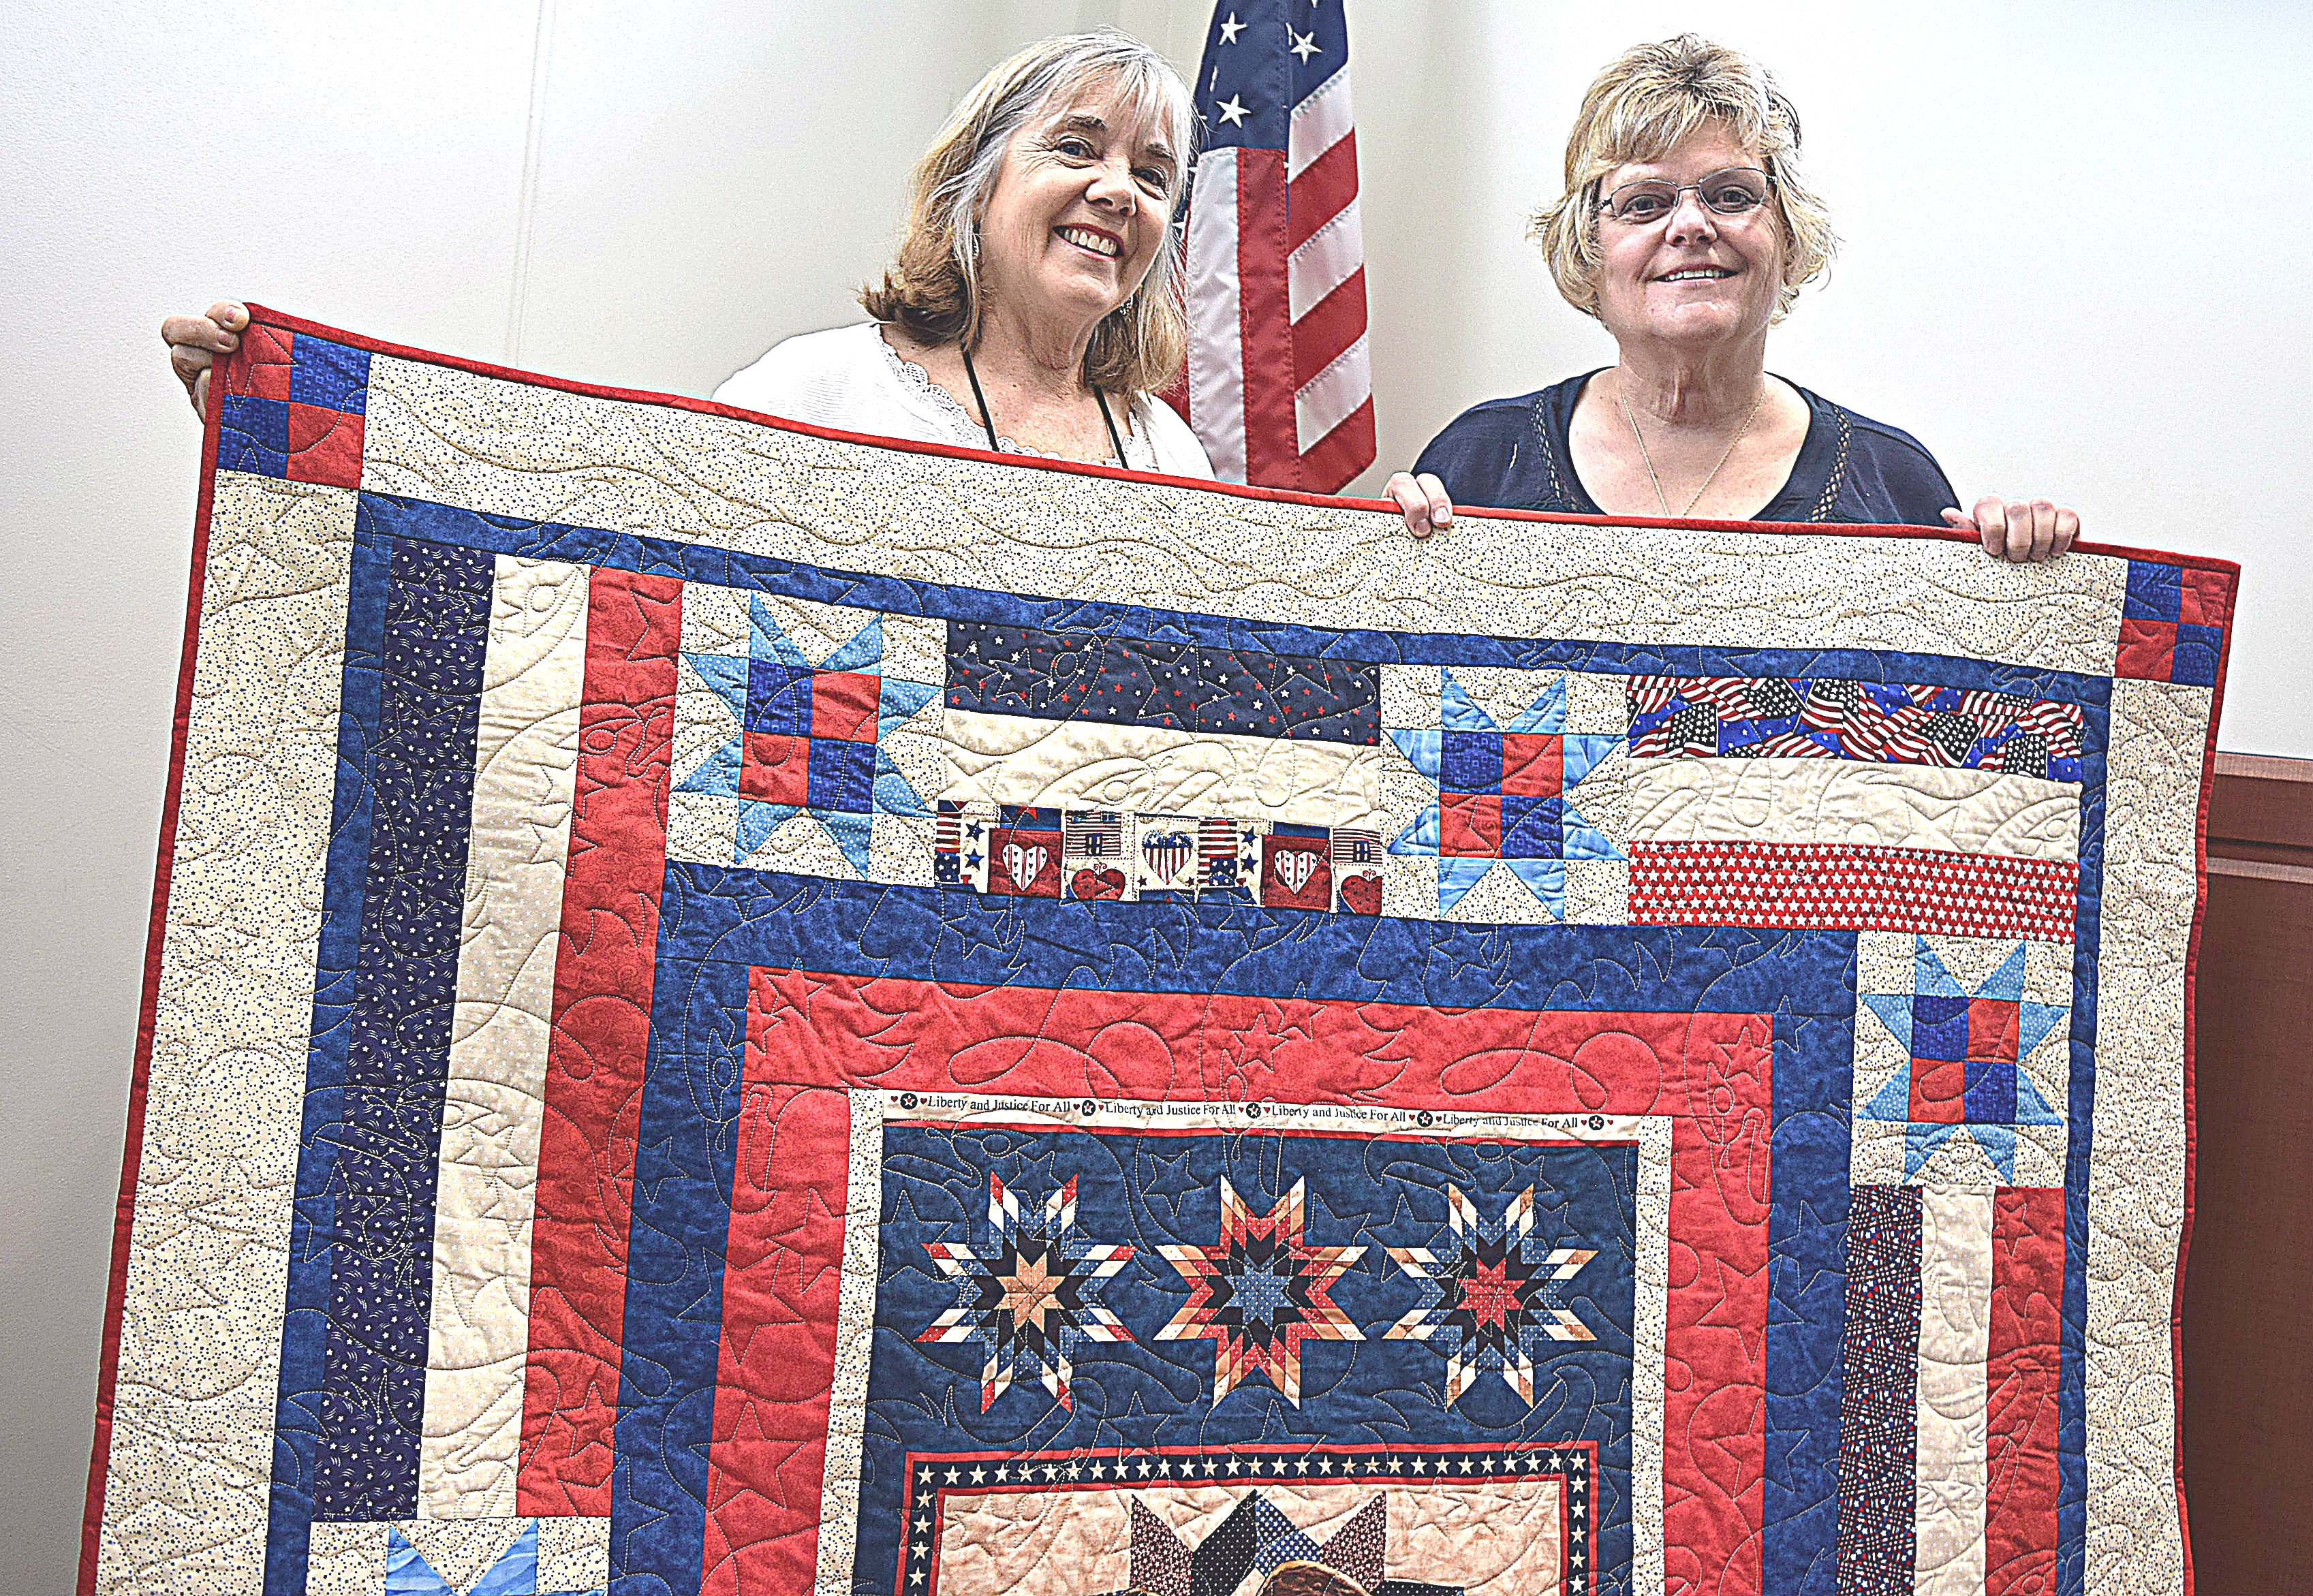 Jill Schoen (left) and Carole Carroll invite folks to attend Miracle Quilts' annual show and display June 9. Photo by Elise Shire.